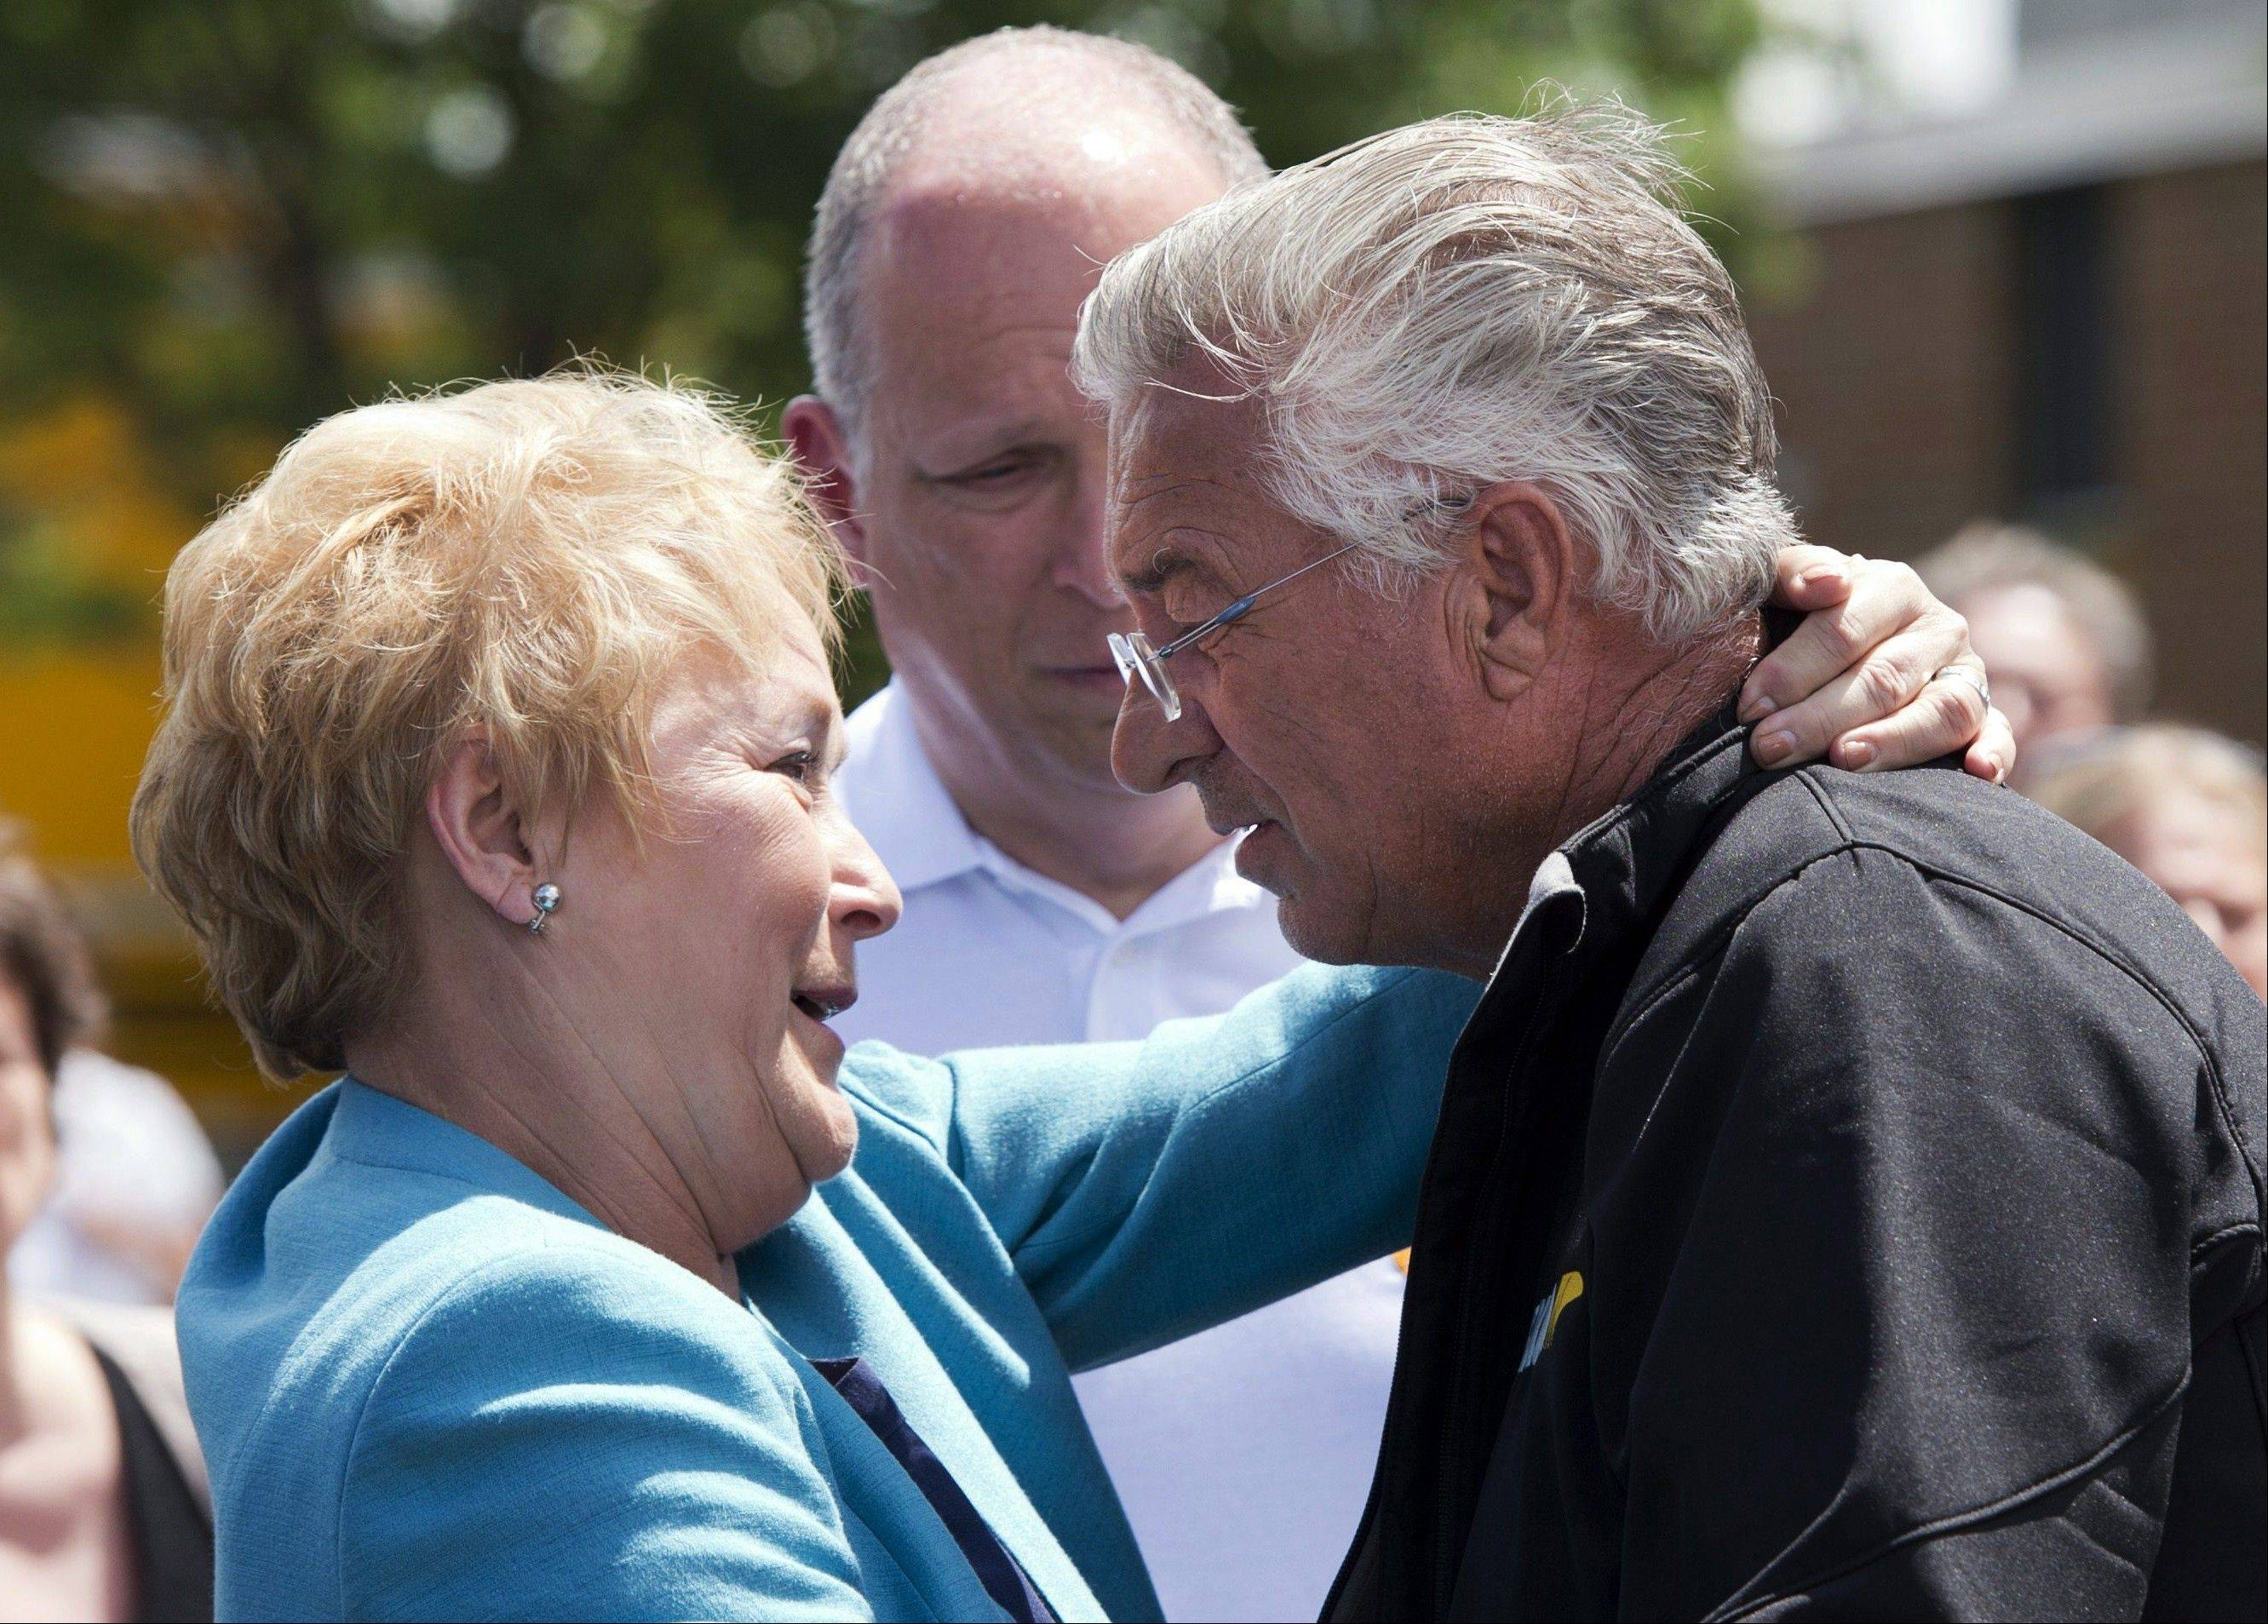 Raymond Lafontaine, who lost his son and two daughters-in-law, receives a hug from Quebec Premier Pauline Marois Friday during her visit to Lac-Megantic, Quebec.